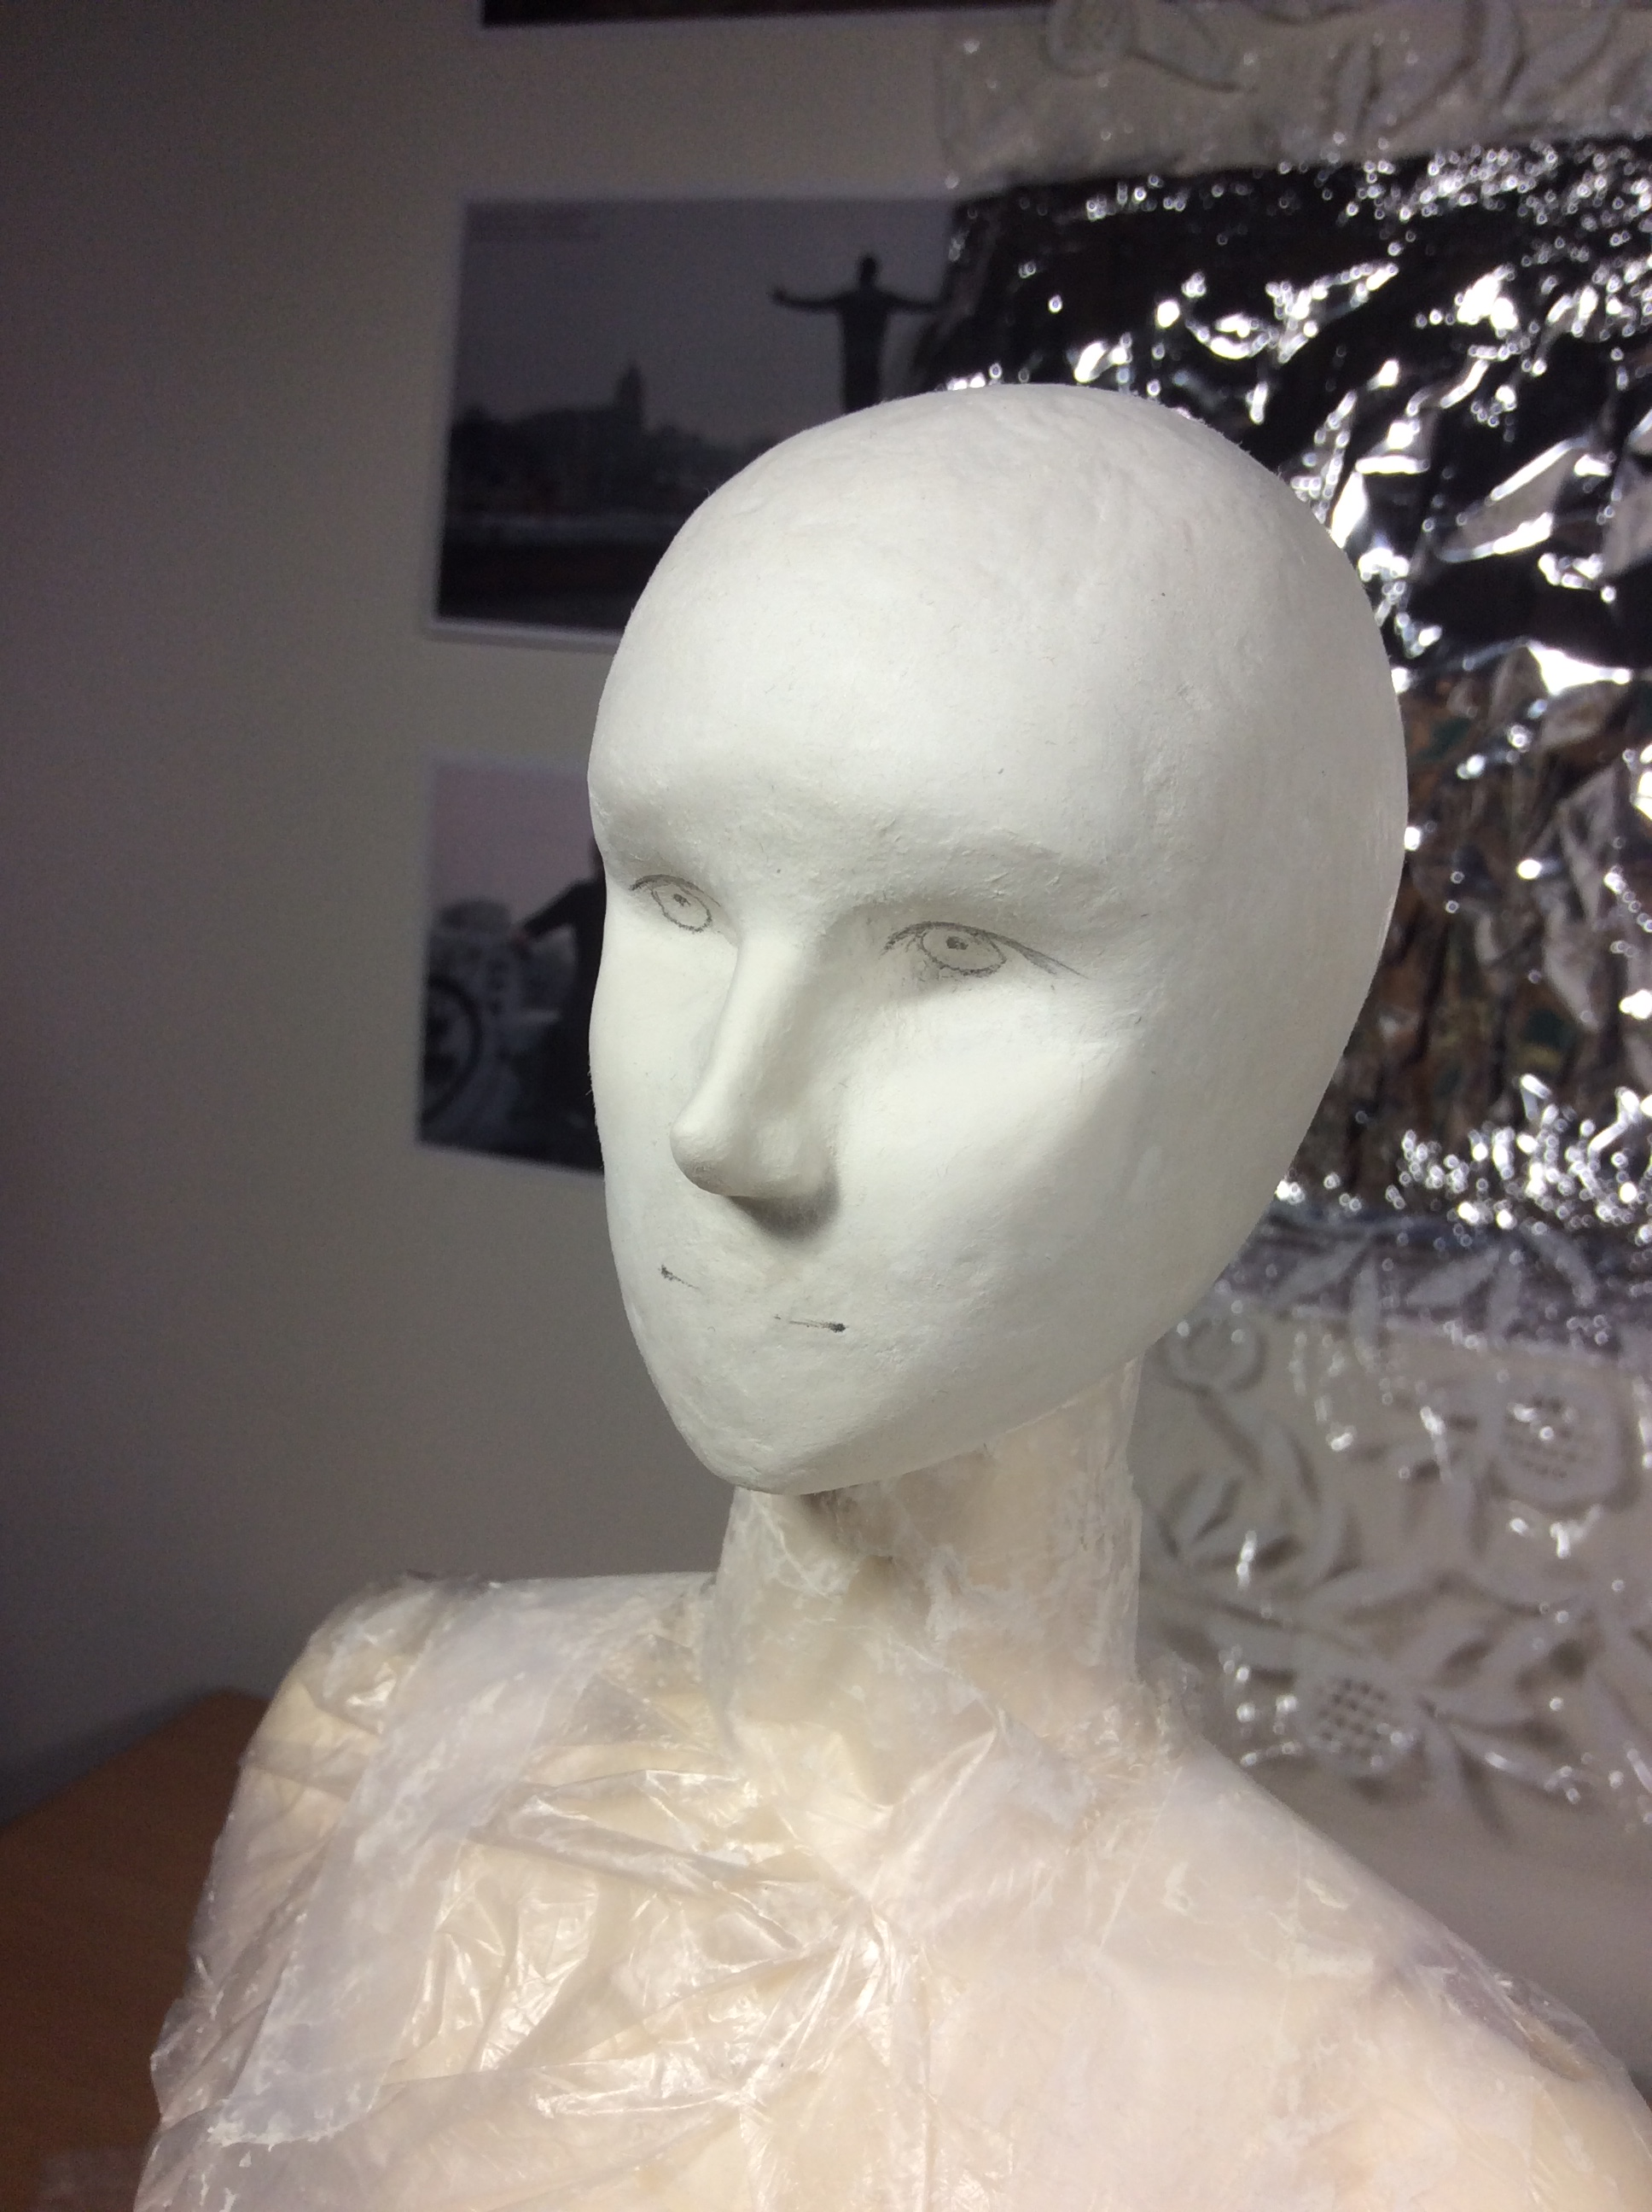 jemse---my-first-doll-head-making-progress-diary-part-2_32263278222_o